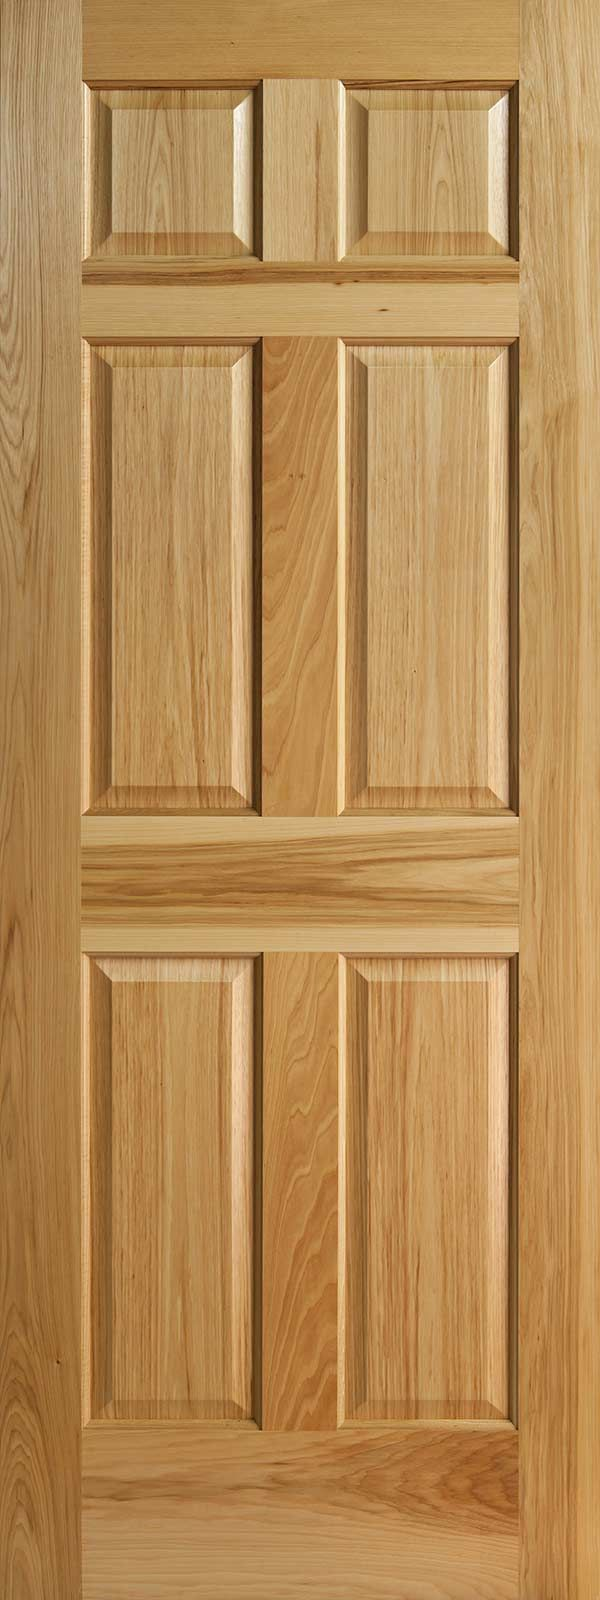 Hickory 6 Panel Wood Interior Door